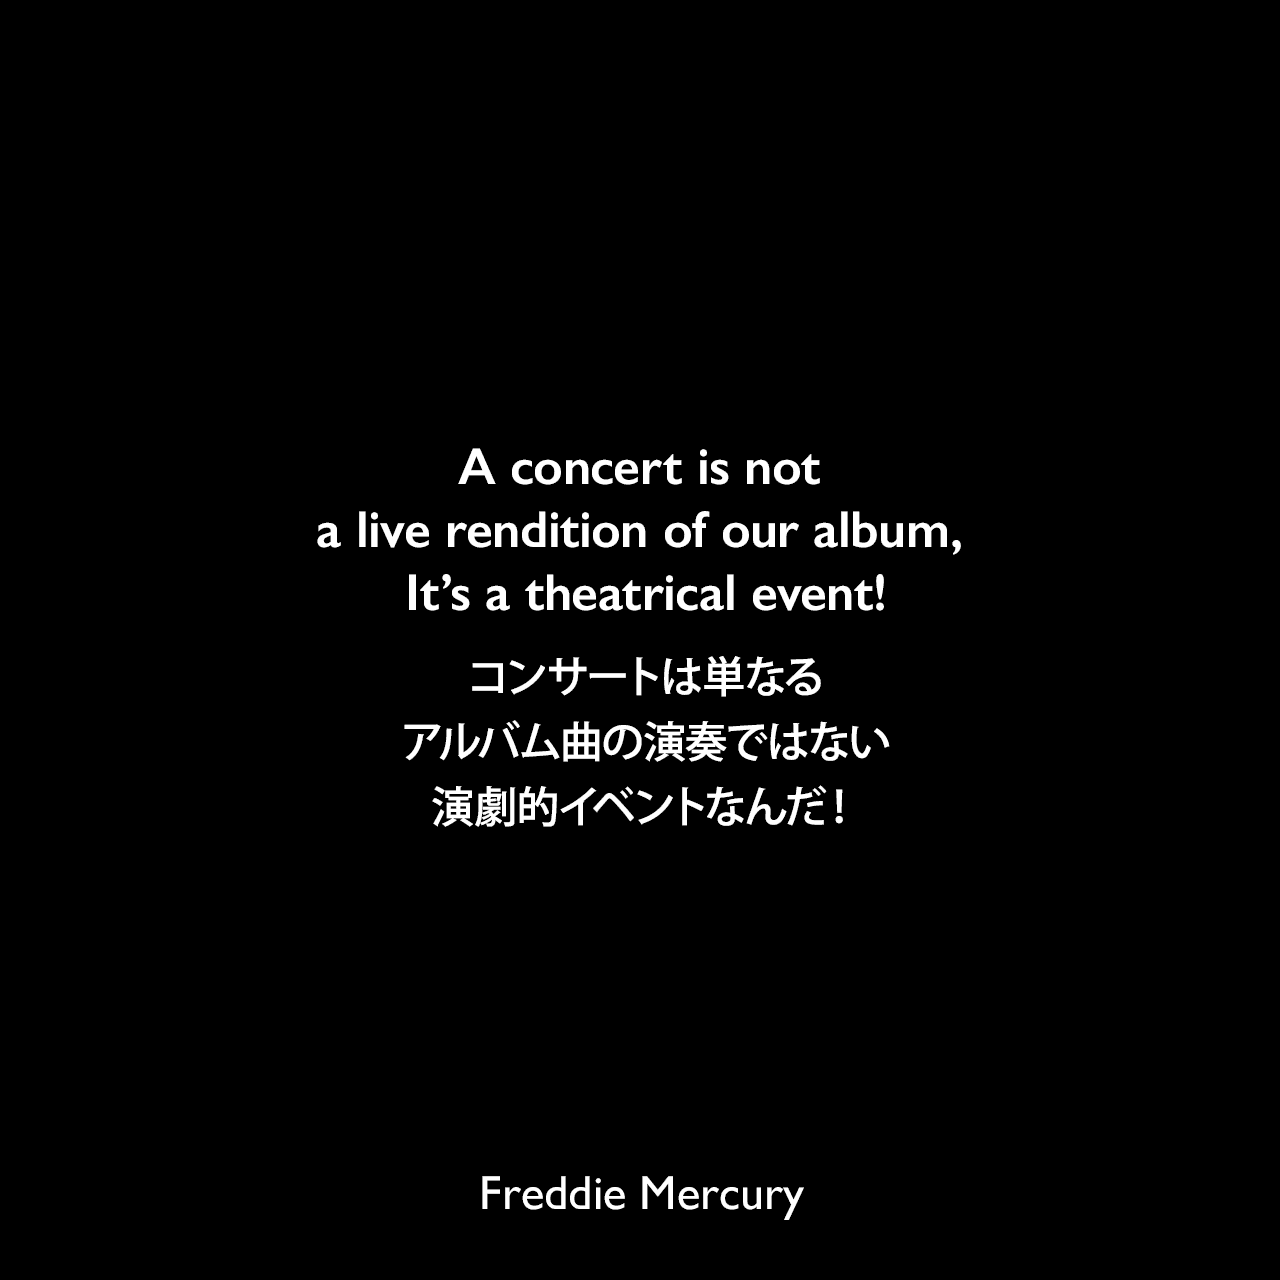 A concert is not a live rendition of our album, It's a theatrical event!コンサートは単なるアルバム曲の演奏ではない、演劇的イベントなんだ!Freddie Mercury